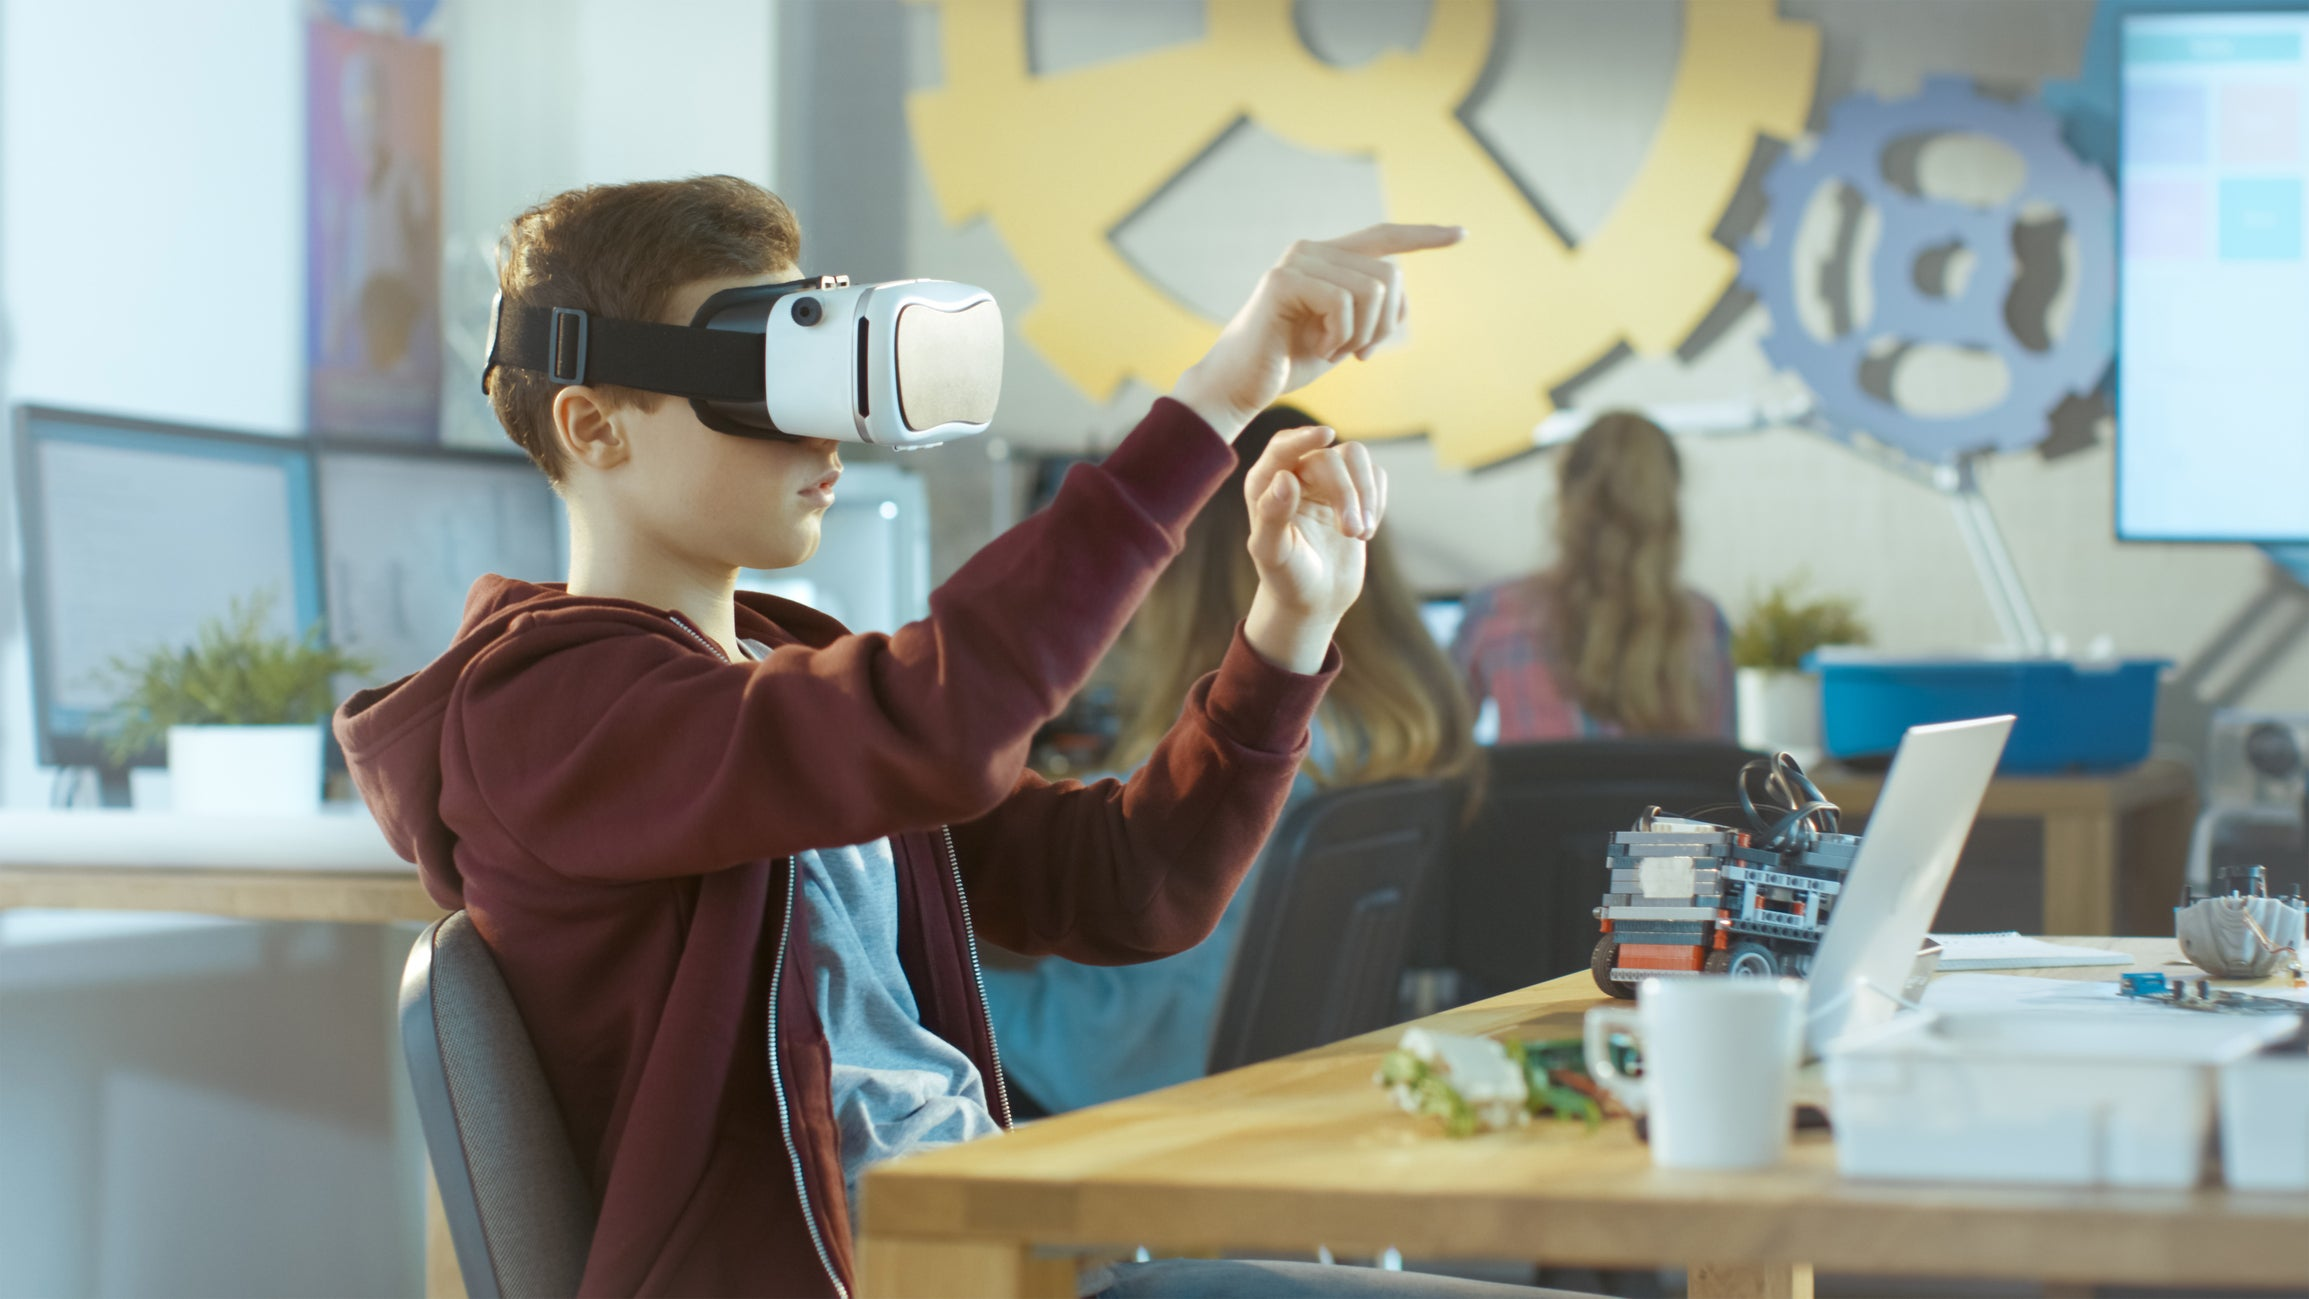 Qualcomm Teases a New Virtual Reality Chipset | The Motley Fool